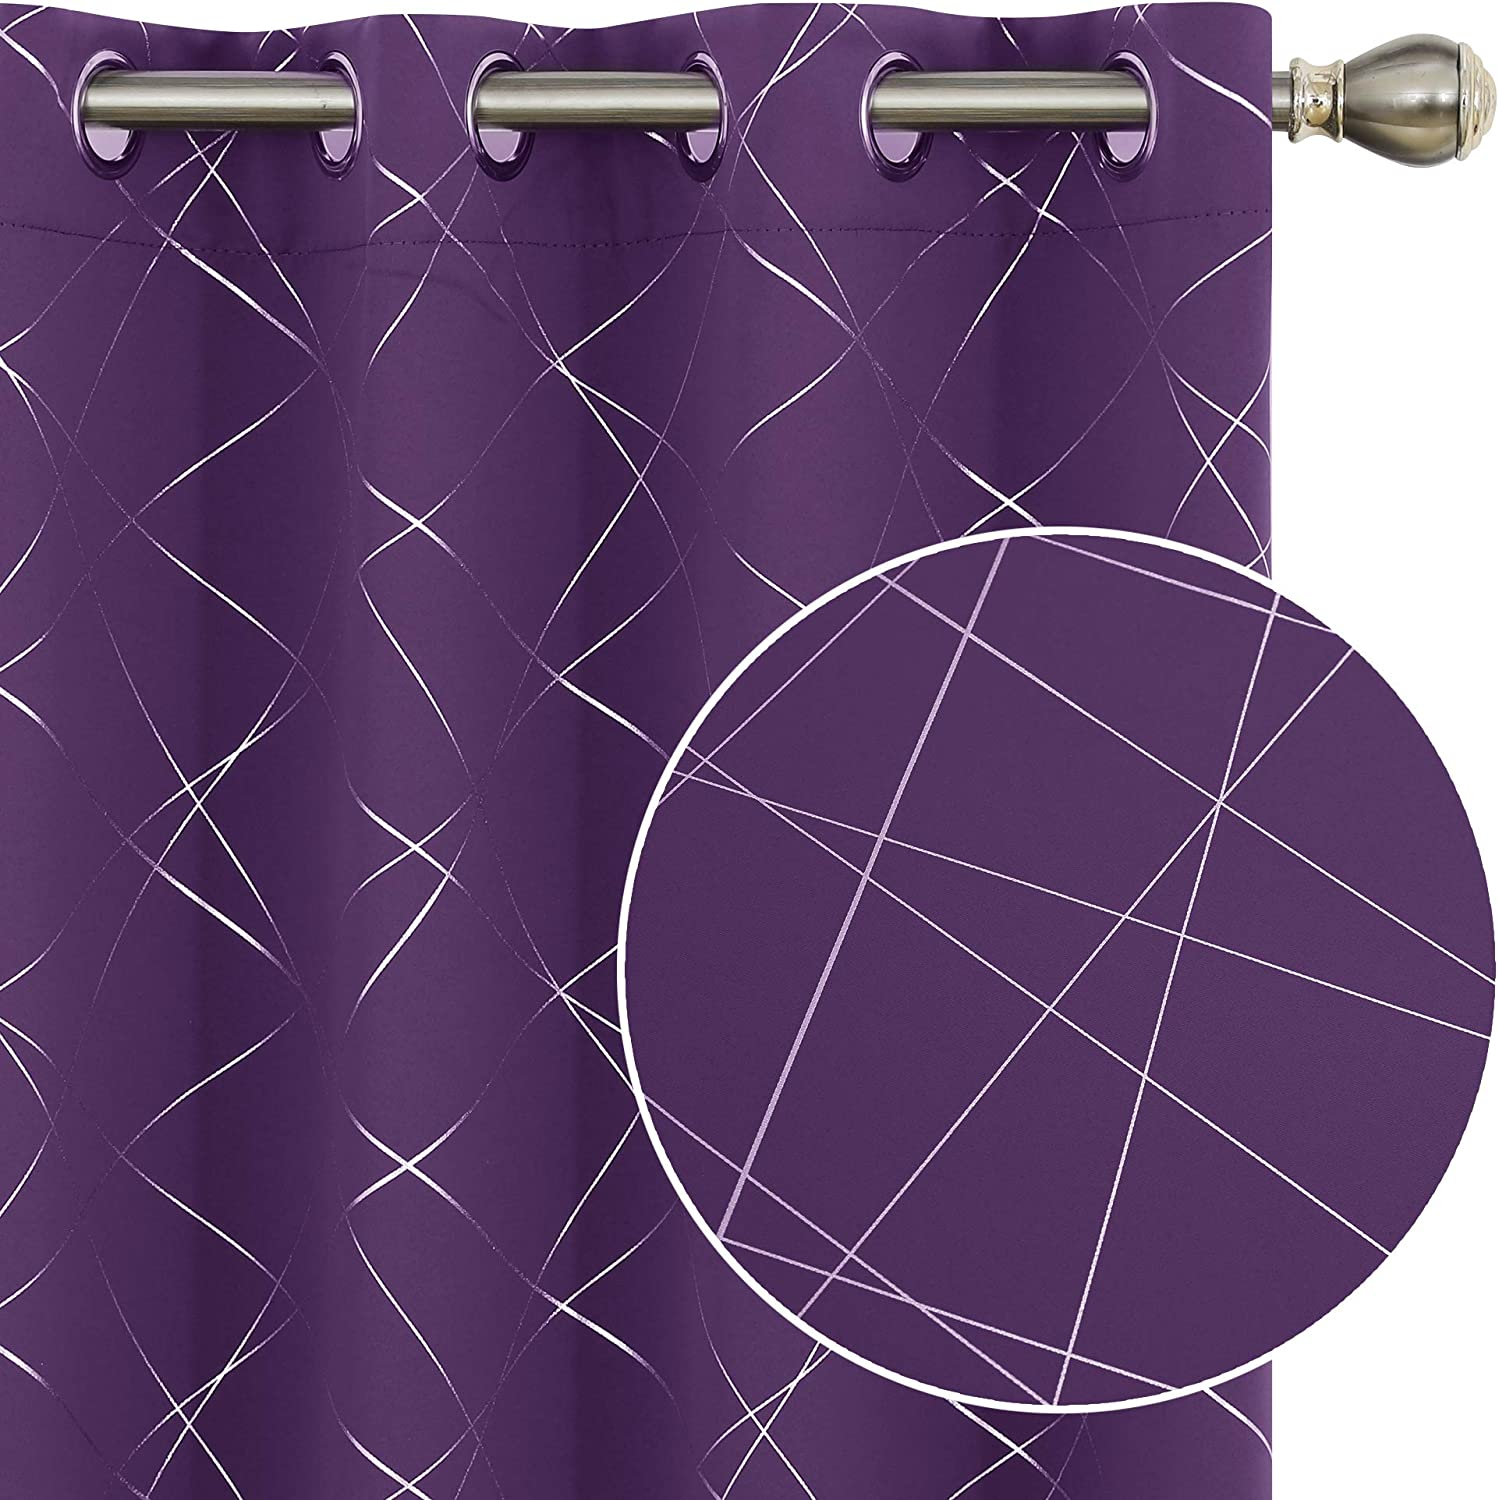 Deconovo Blackout Curtains for Bedroom Living Room 2 Panels Thermal Insulated Window Drapes Room Darkening Curtains for Kitchen - 2 Panels, Each 52x90 Inch Purple Grape